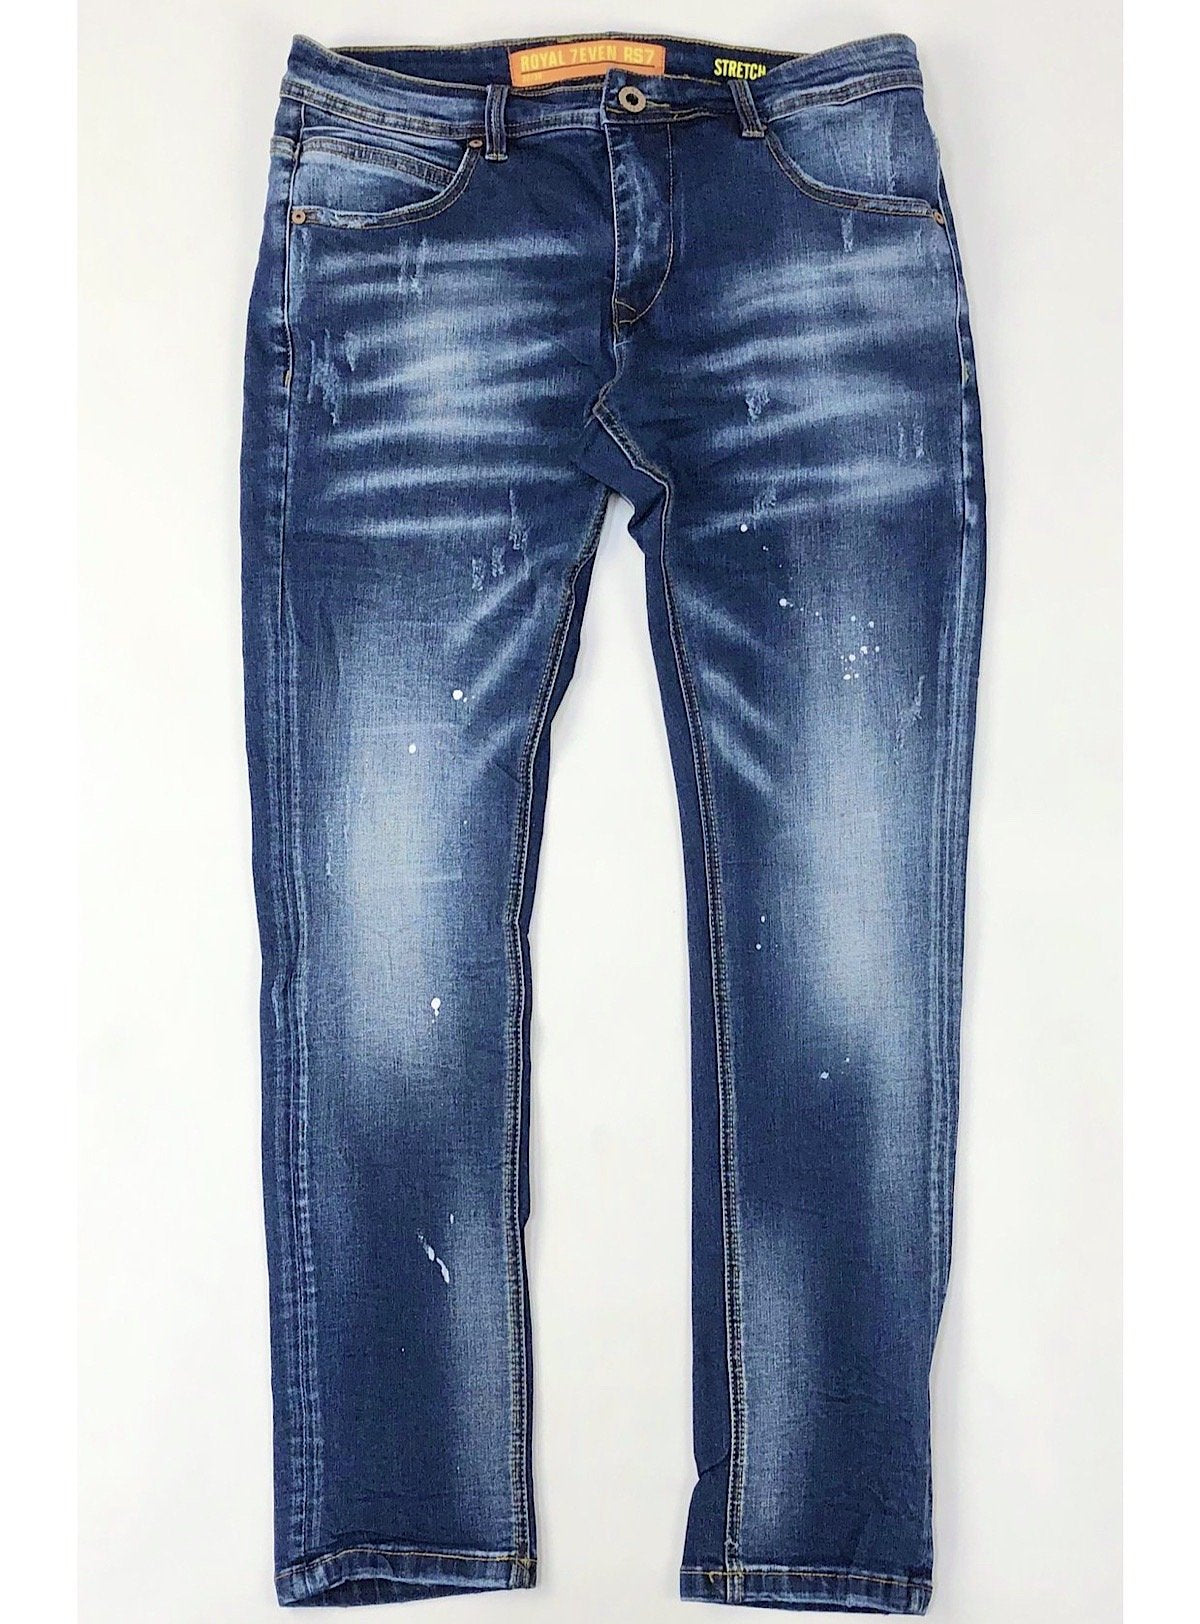 Royal 7even Jeans - Washed - Dark Blue - RS1827-164A